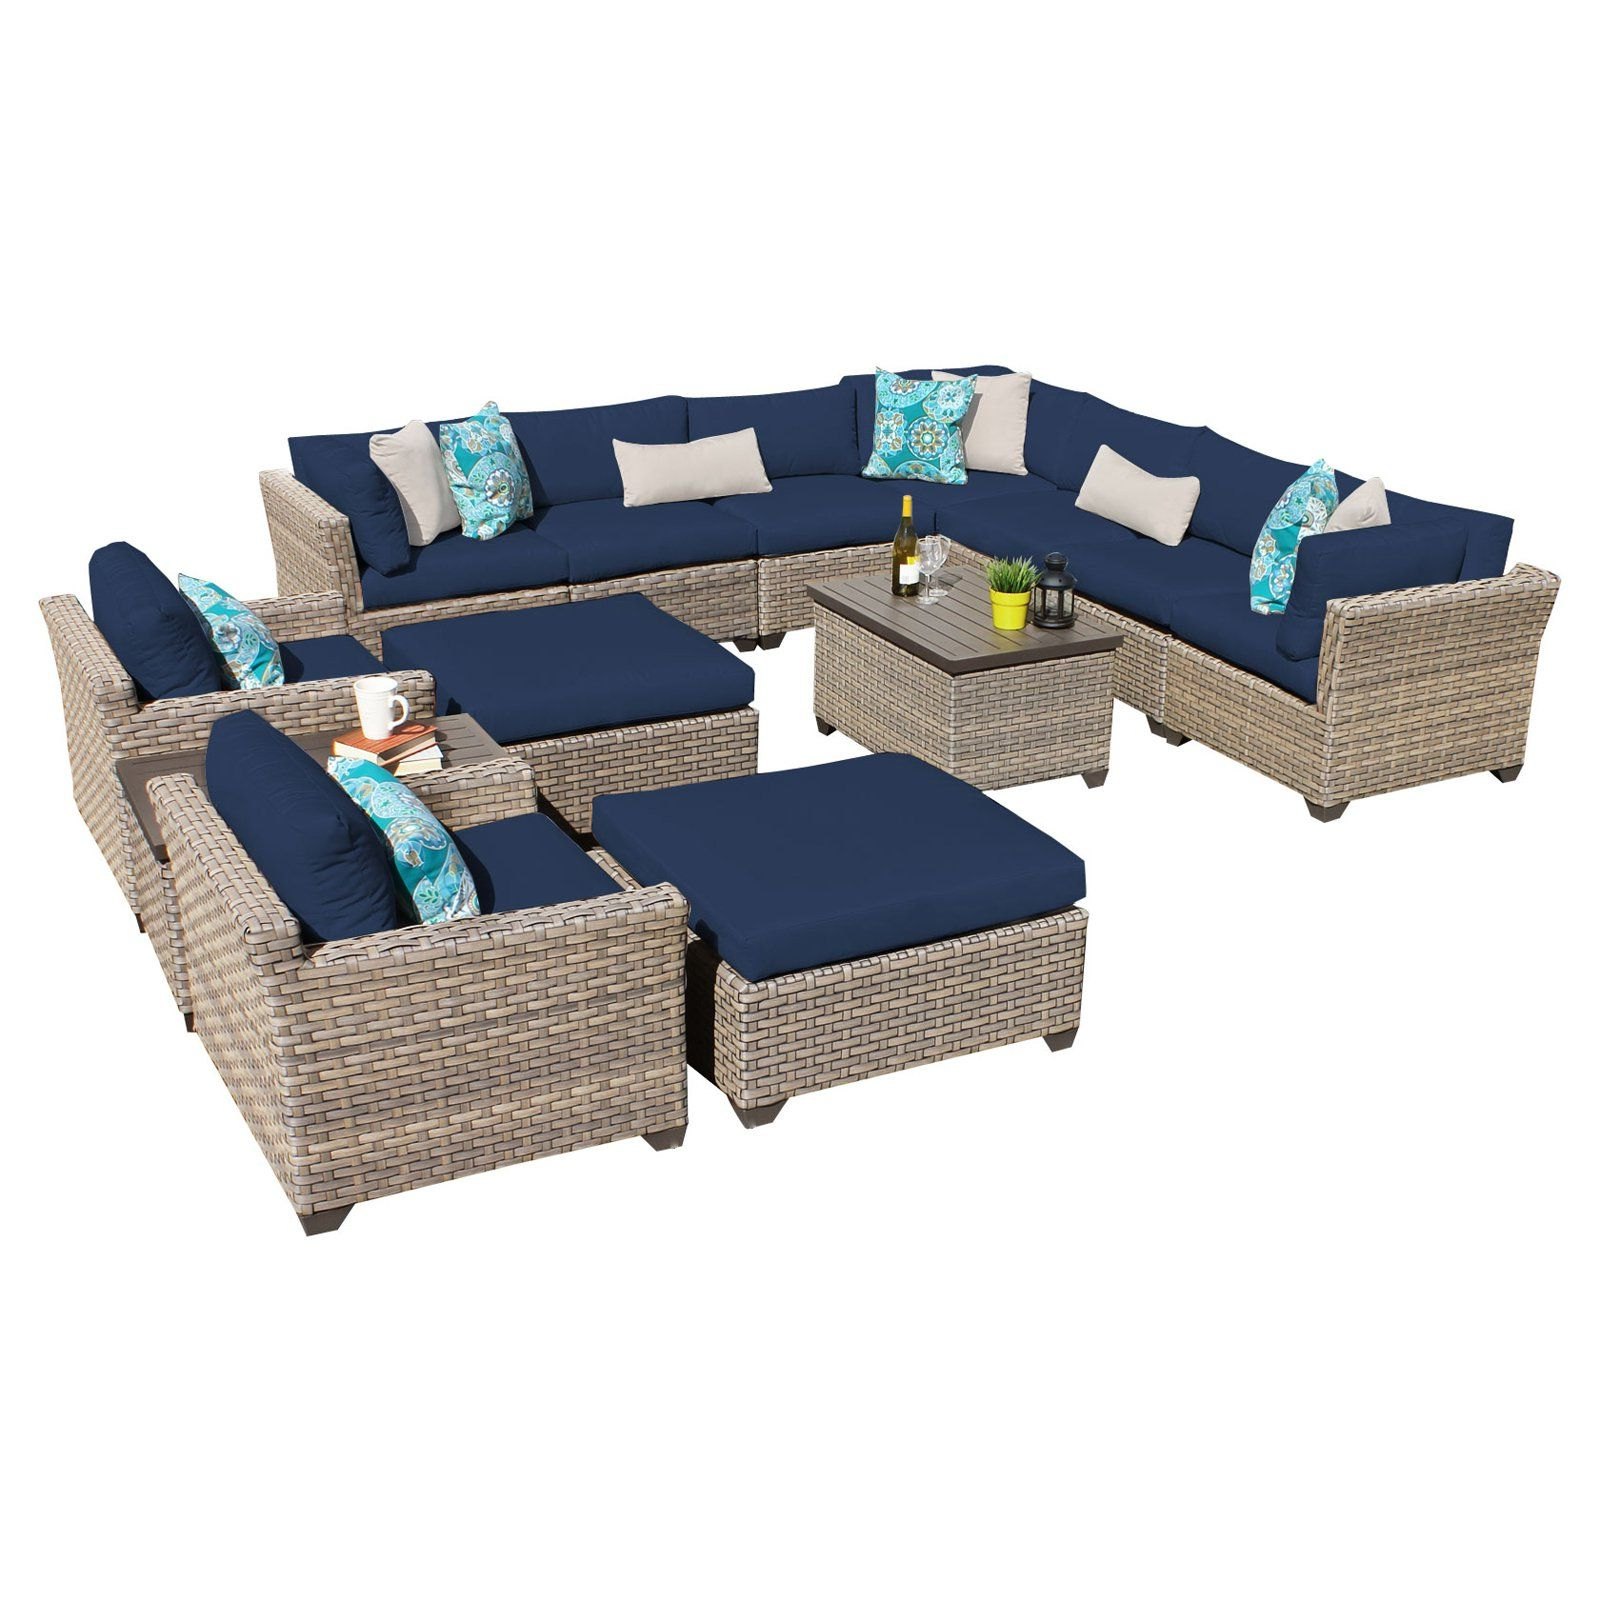 Well Liked Outdoor Tk Classics Monterey Wicker 13 Piece Patio Regarding Outdoor 13 Piece Wicker Patio Sets With Cushions (View 23 of 25)